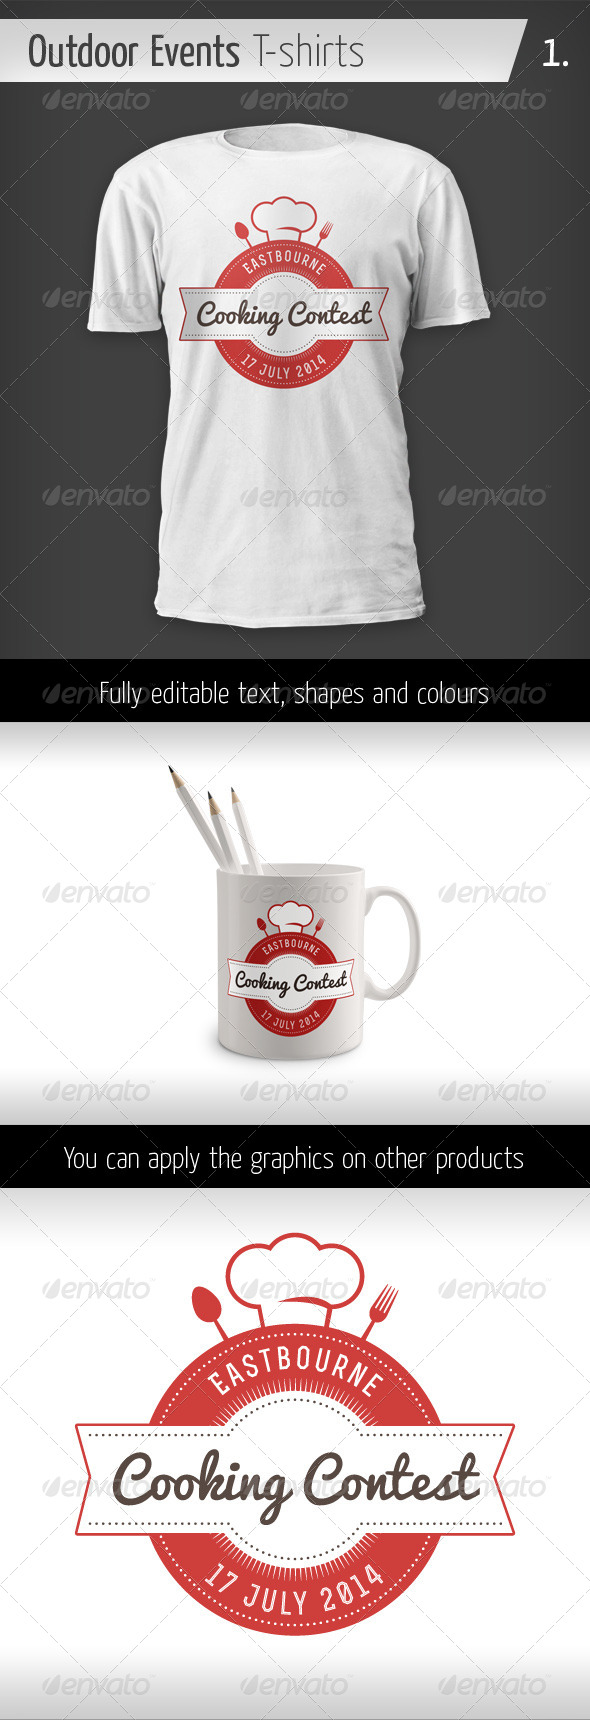 GraphicRiver Outdoor Events T-shirts Cooking contest 6436095